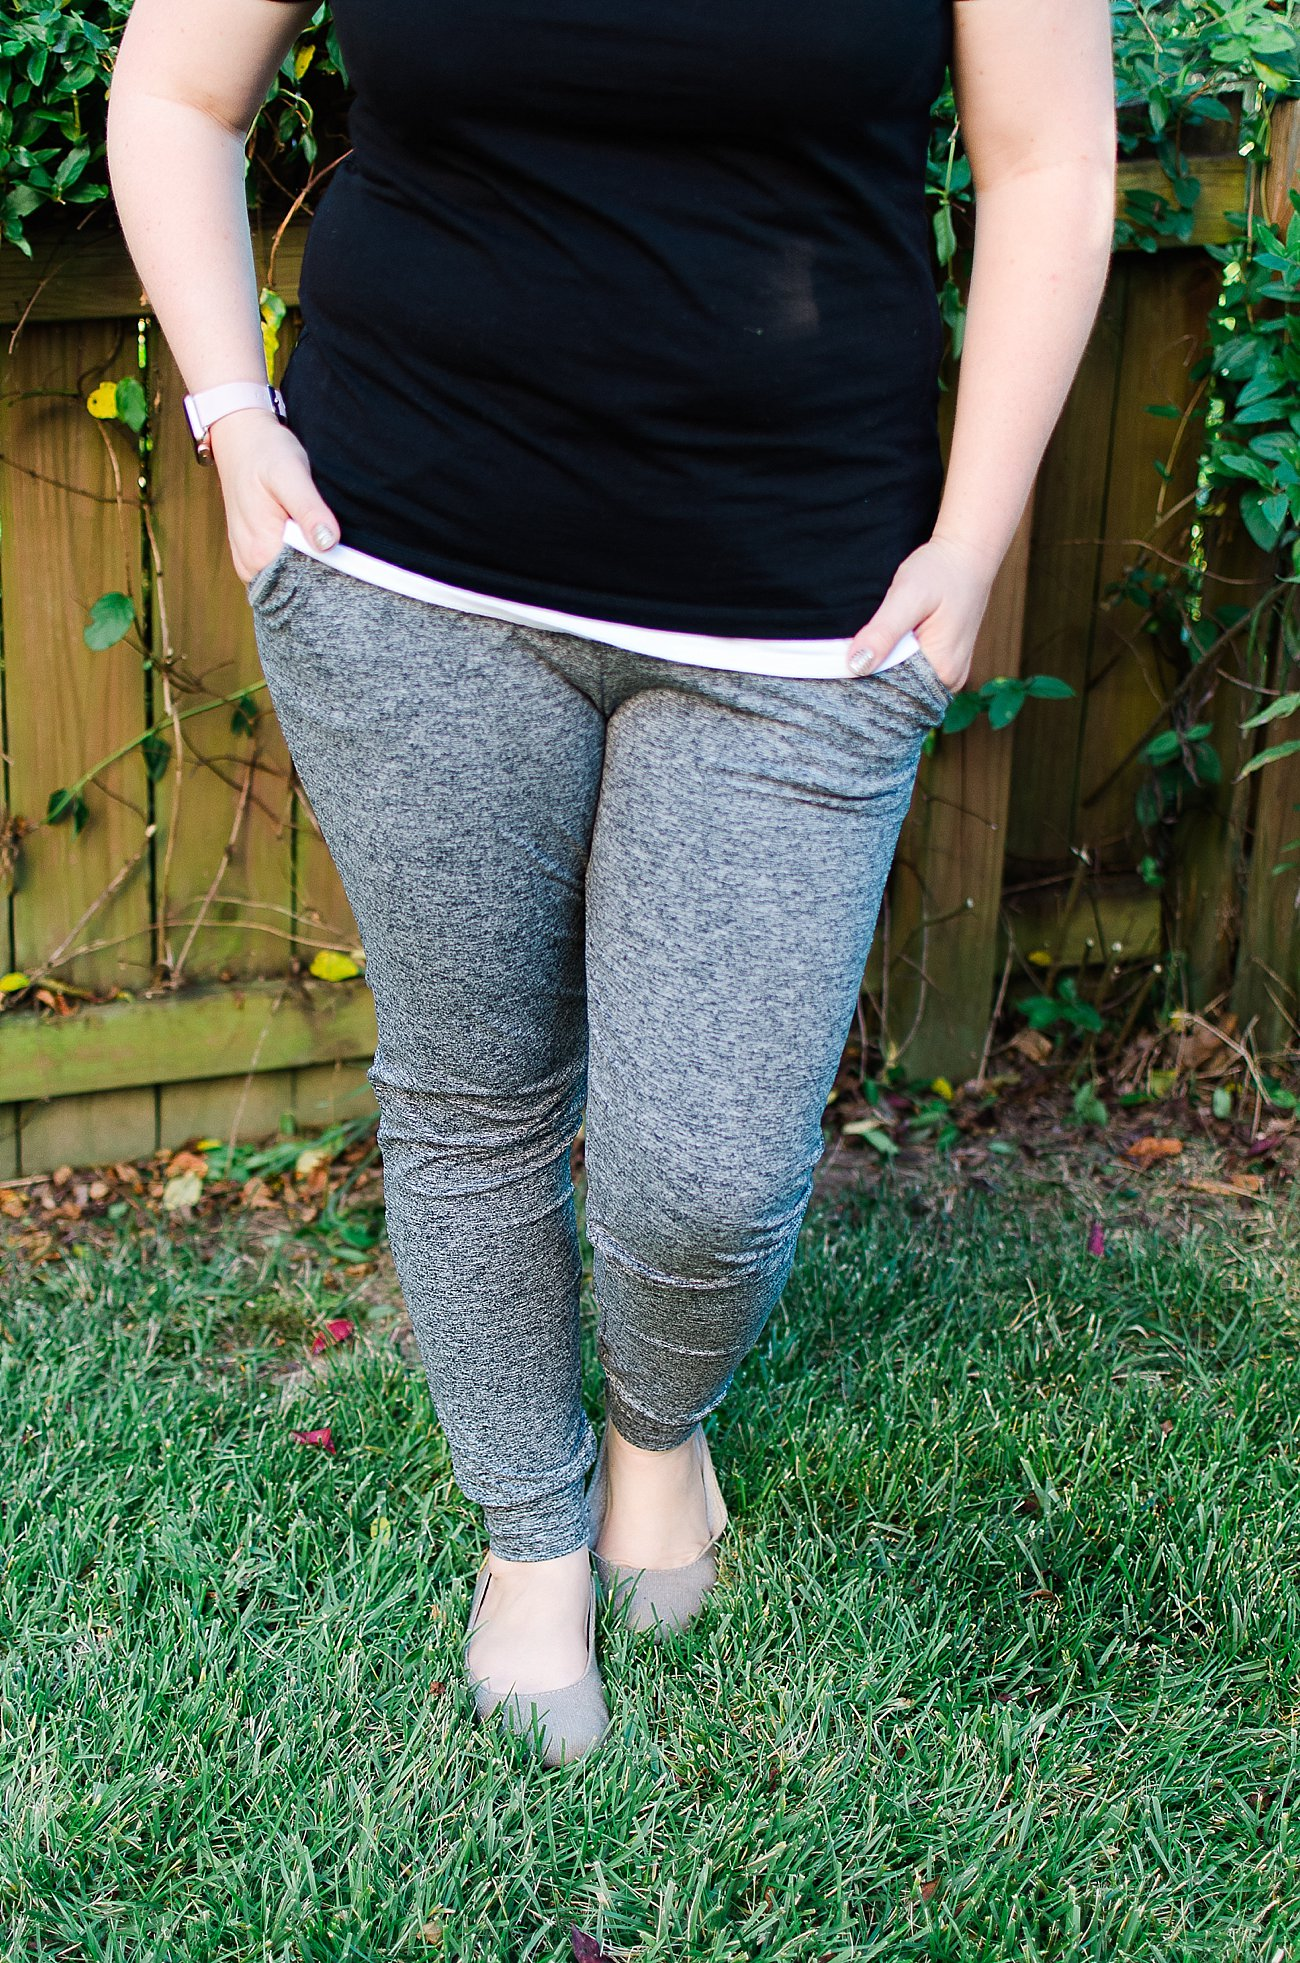 """Stitch Fix Good hYOUman """"Teighlor Slim Fit Drawstring Jogger Pant"""" - Size XL - $78 (Made in the USA!)"""